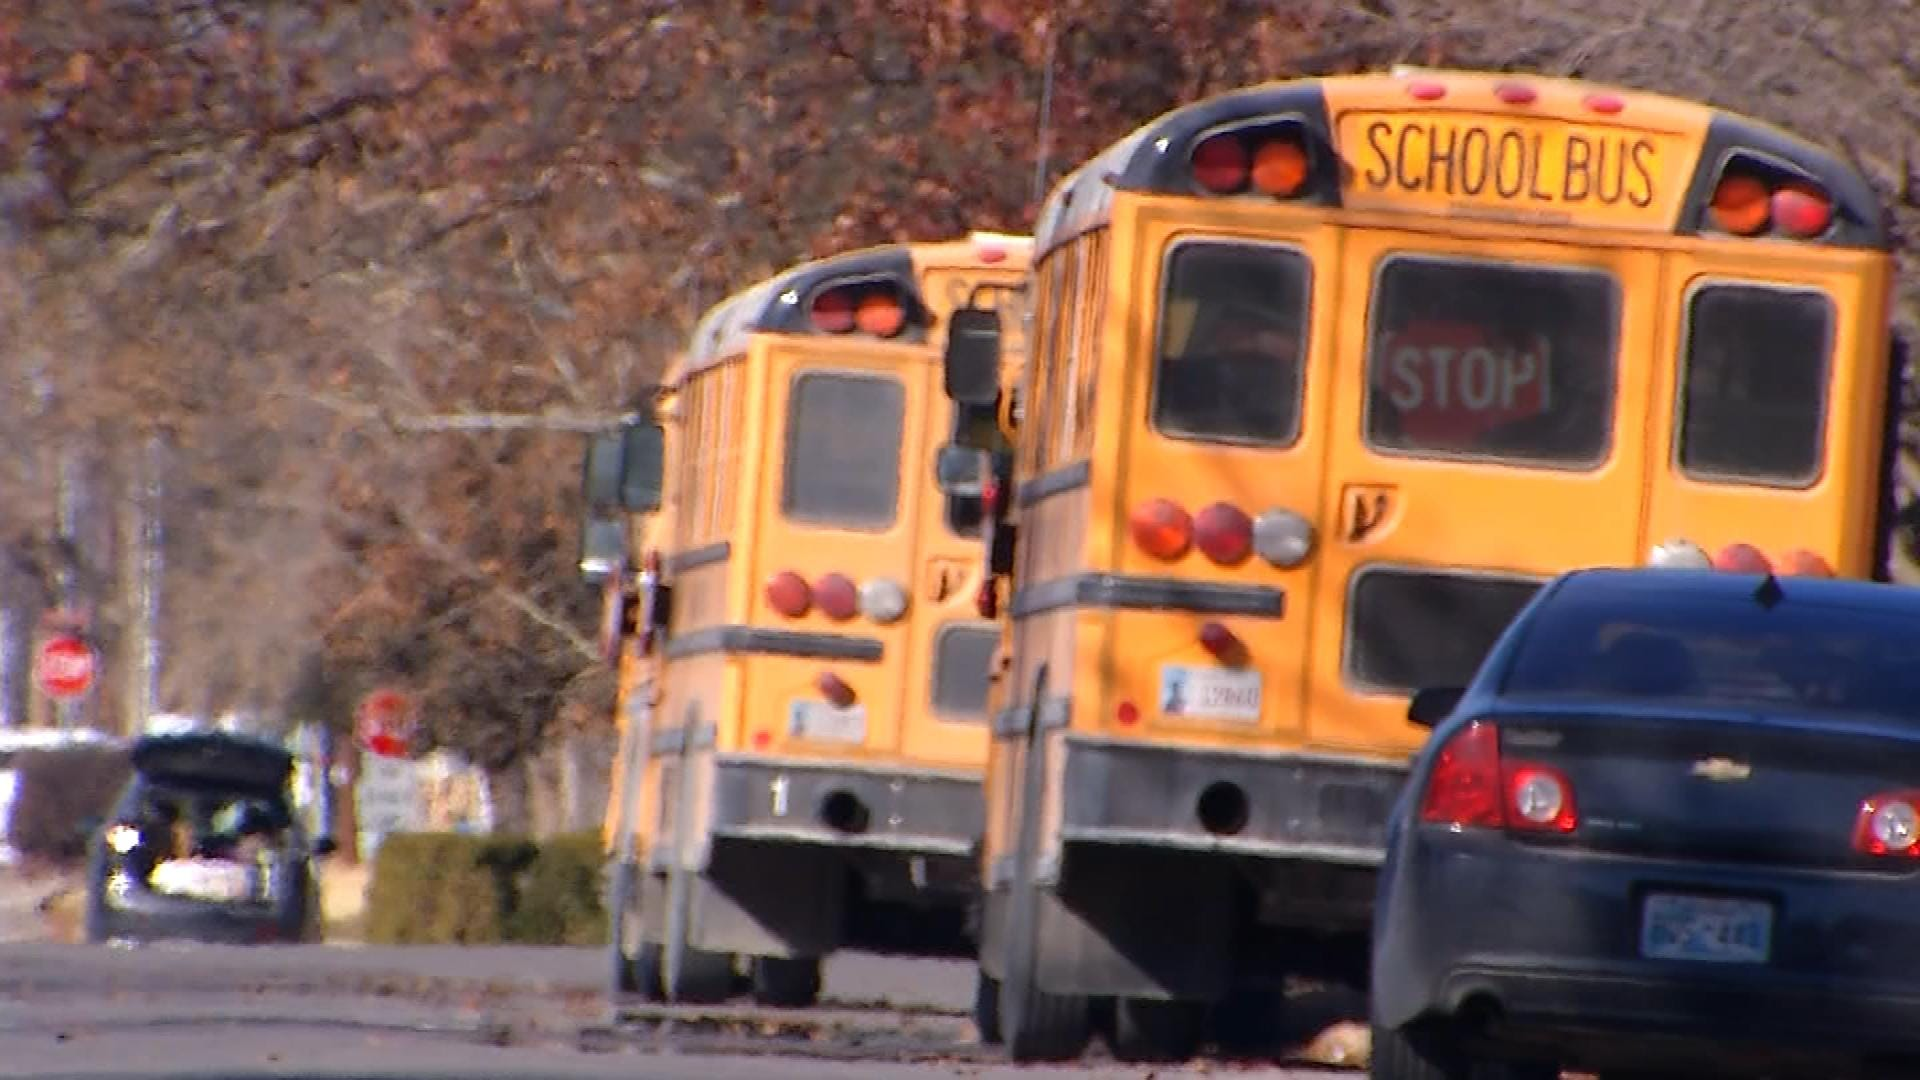 Governor Signs Bill Funding Cameras For School Buses